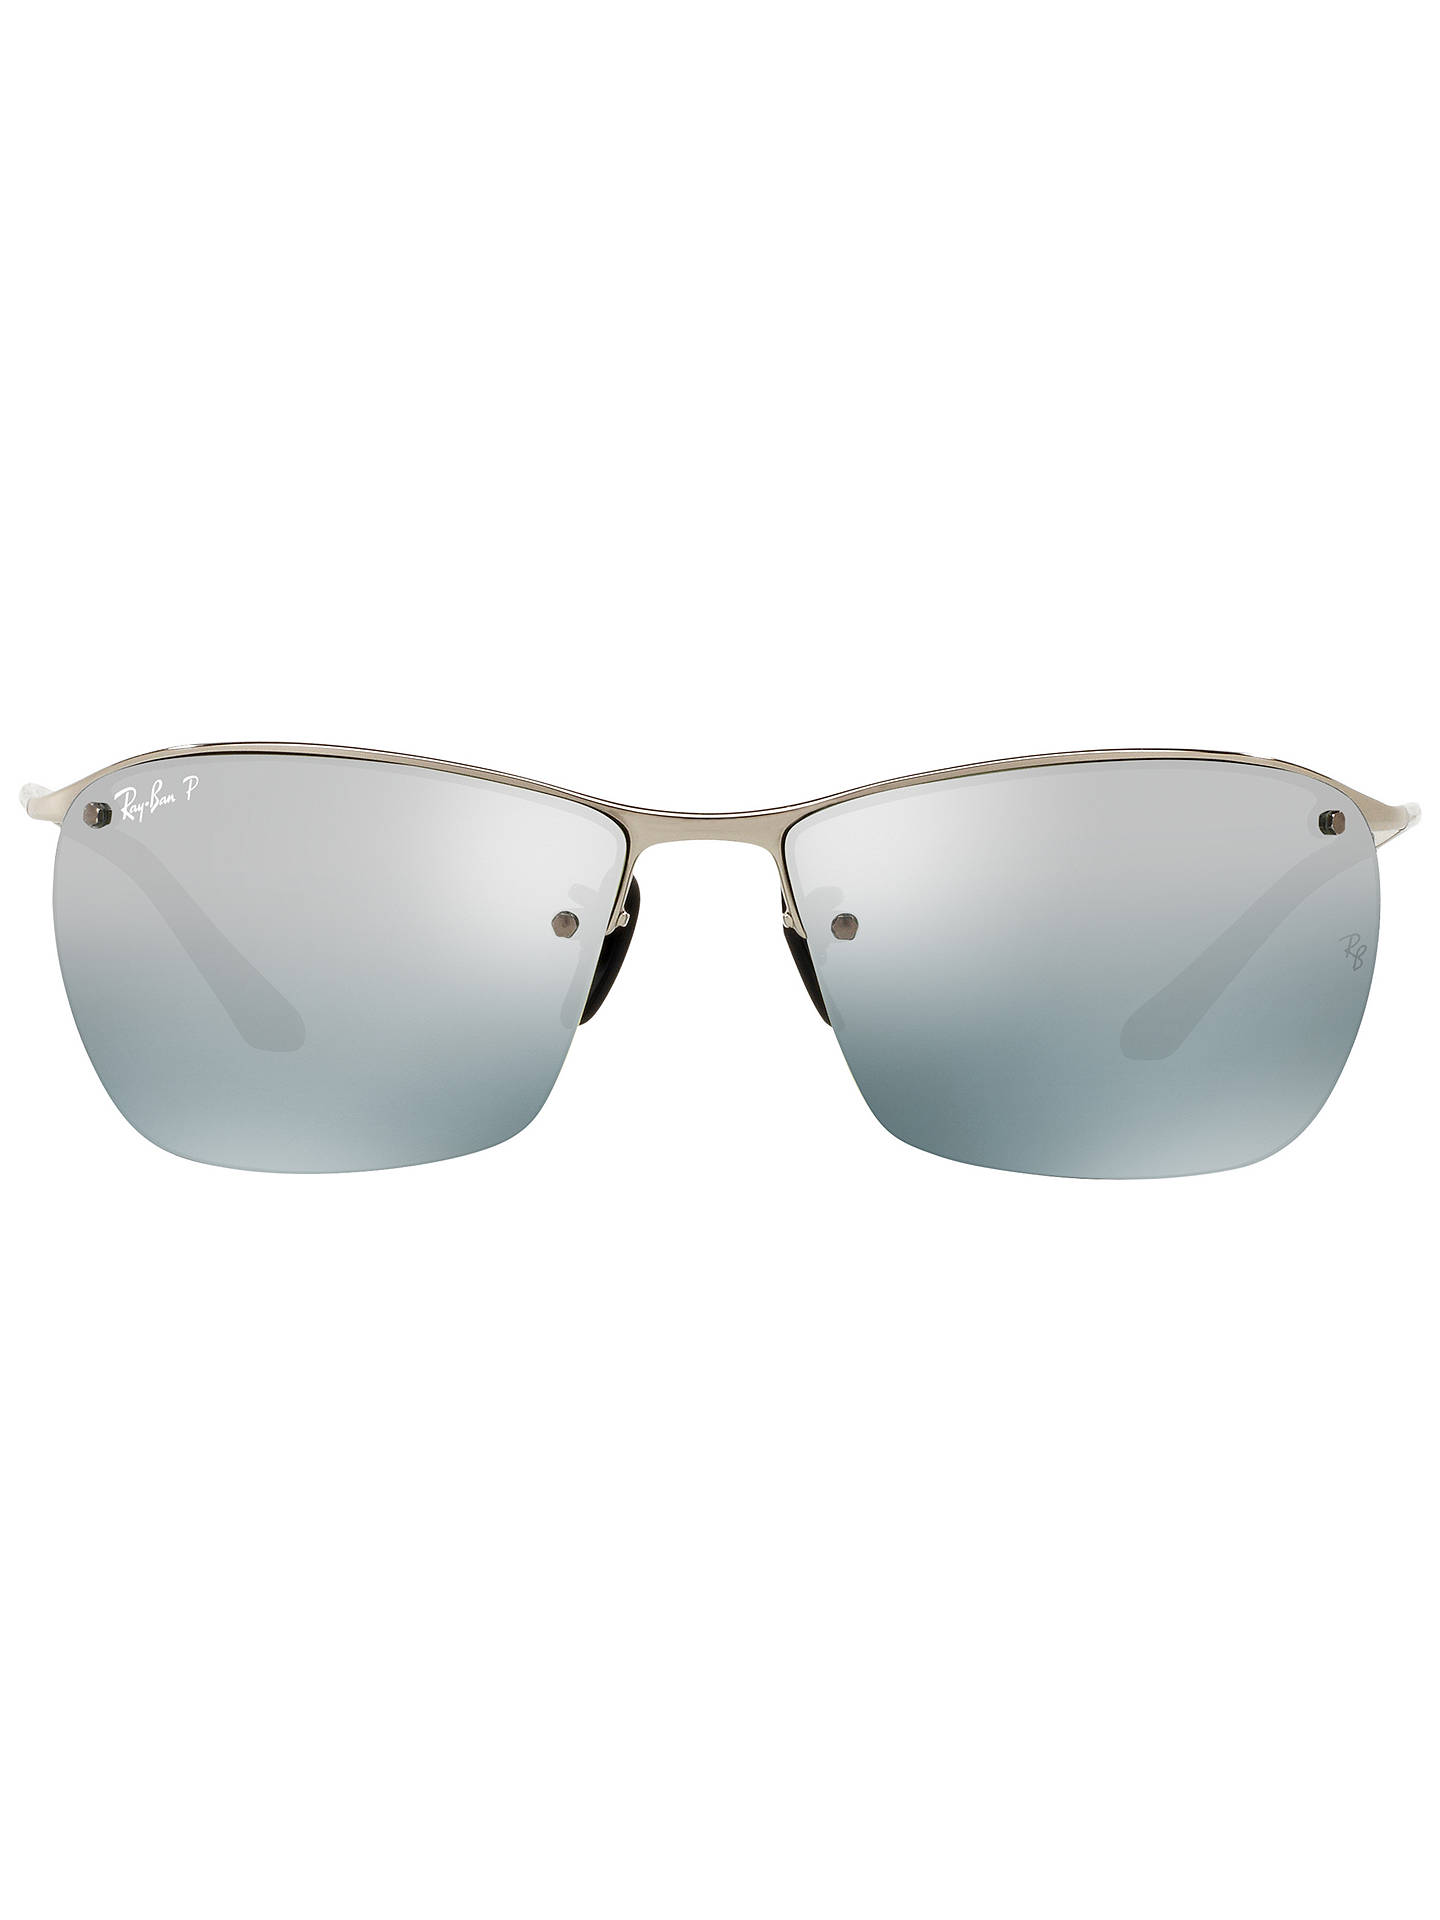 BuyRay-Ban RB3544 Polarised Chromance Rectangular Sunglasses, Silver Online at johnlewis.com